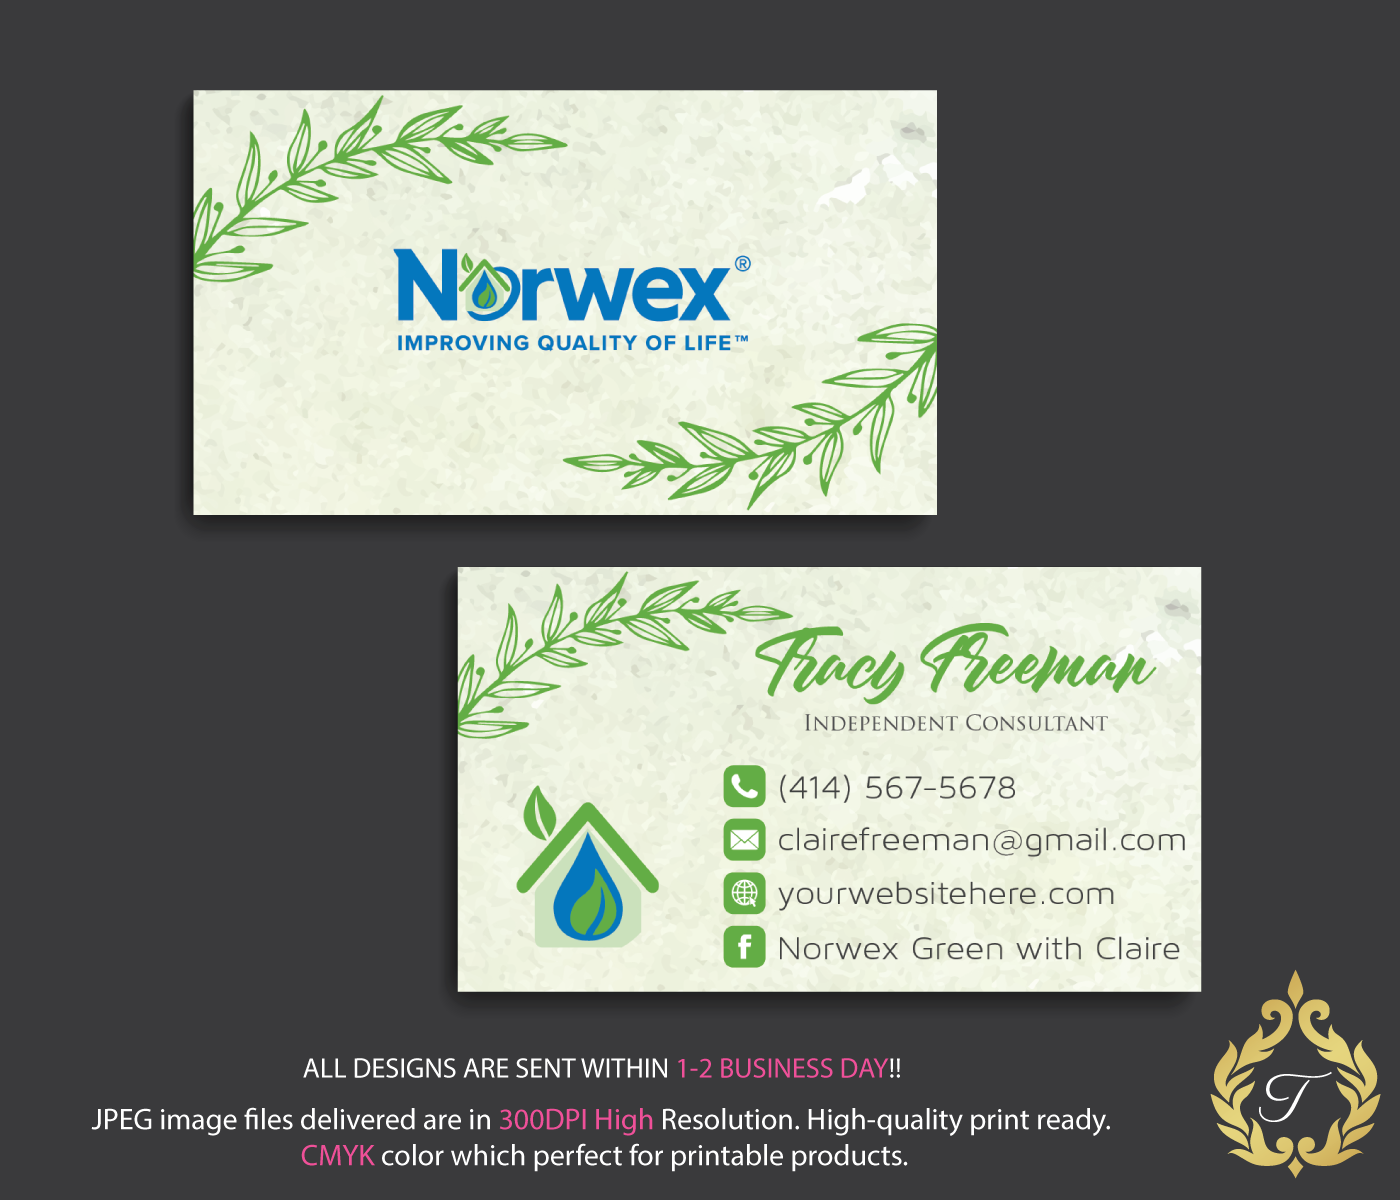 Custom Business Card Norwex Green Cleaning Business Cards Floral Norwex Business Card Personalized Business Card Nr06 Cleaning Business Cards Personal Business Cards Printing Business Cards